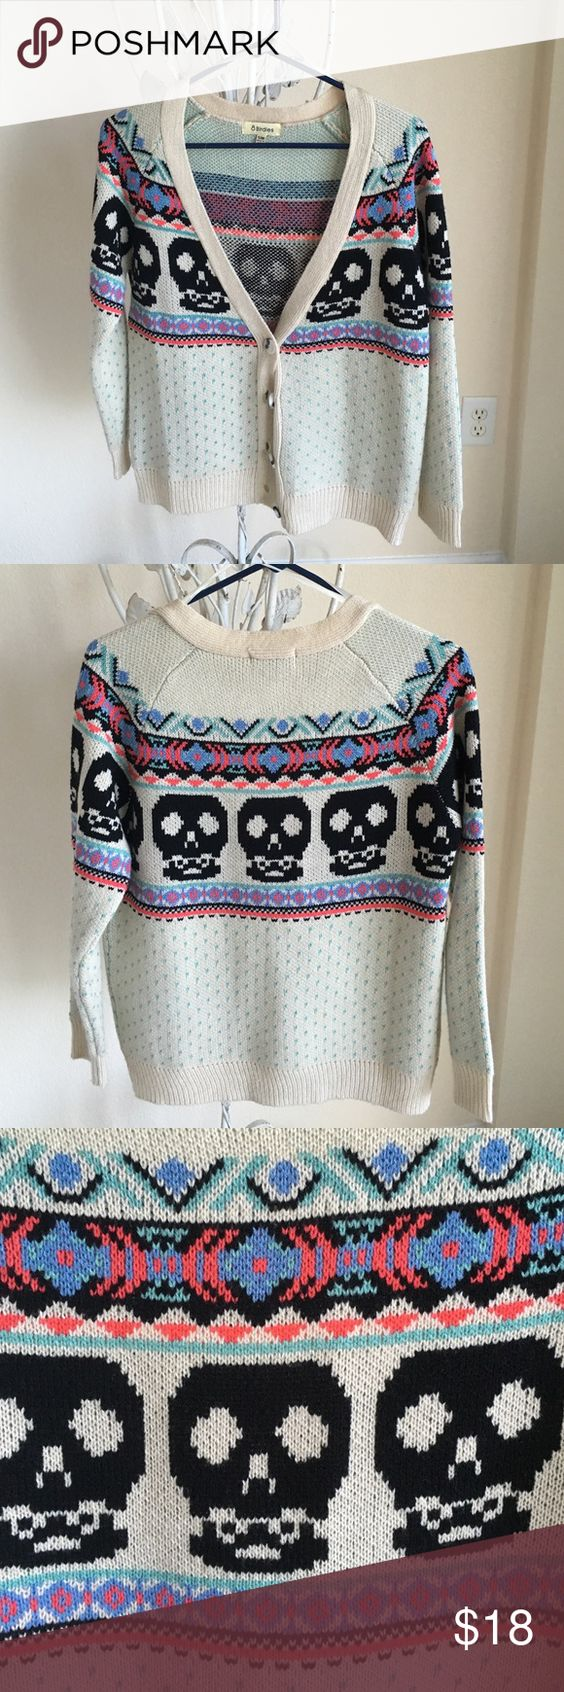 "Cute skull cardigan Cute v-neck skull pattern cardigan. Worn once or twice. Like new. Size marked as ""S/M."" 8 birdies Sweaters Cardigans"